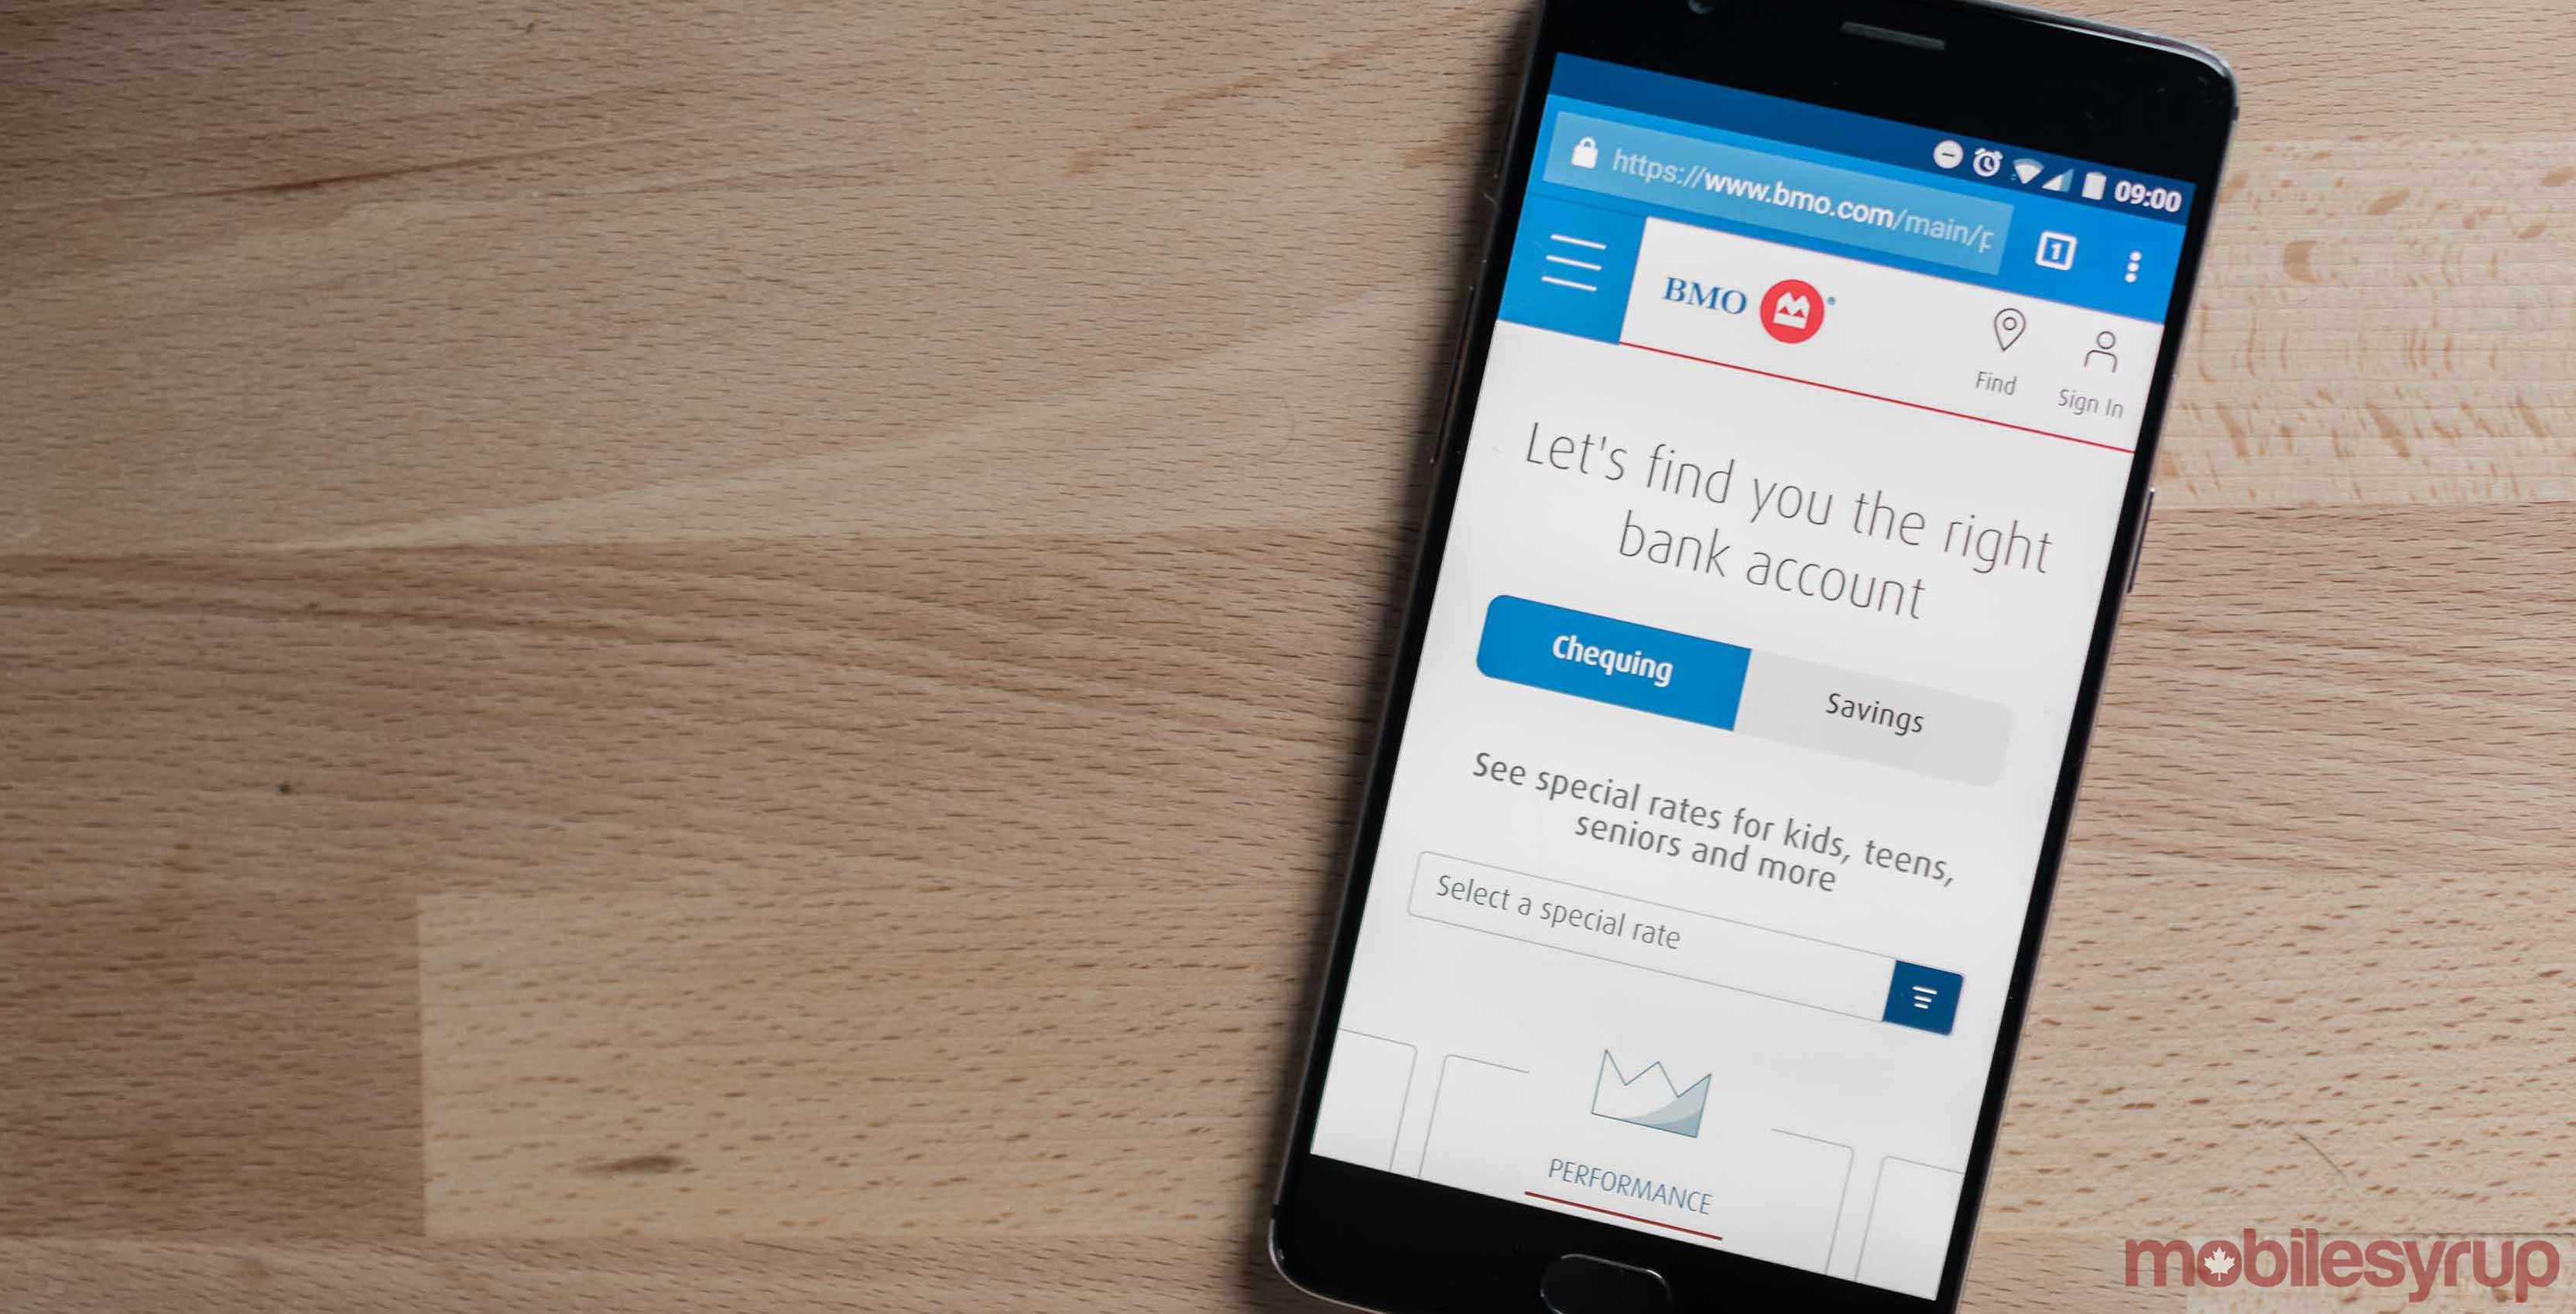 Bank of Montreal app on a phone